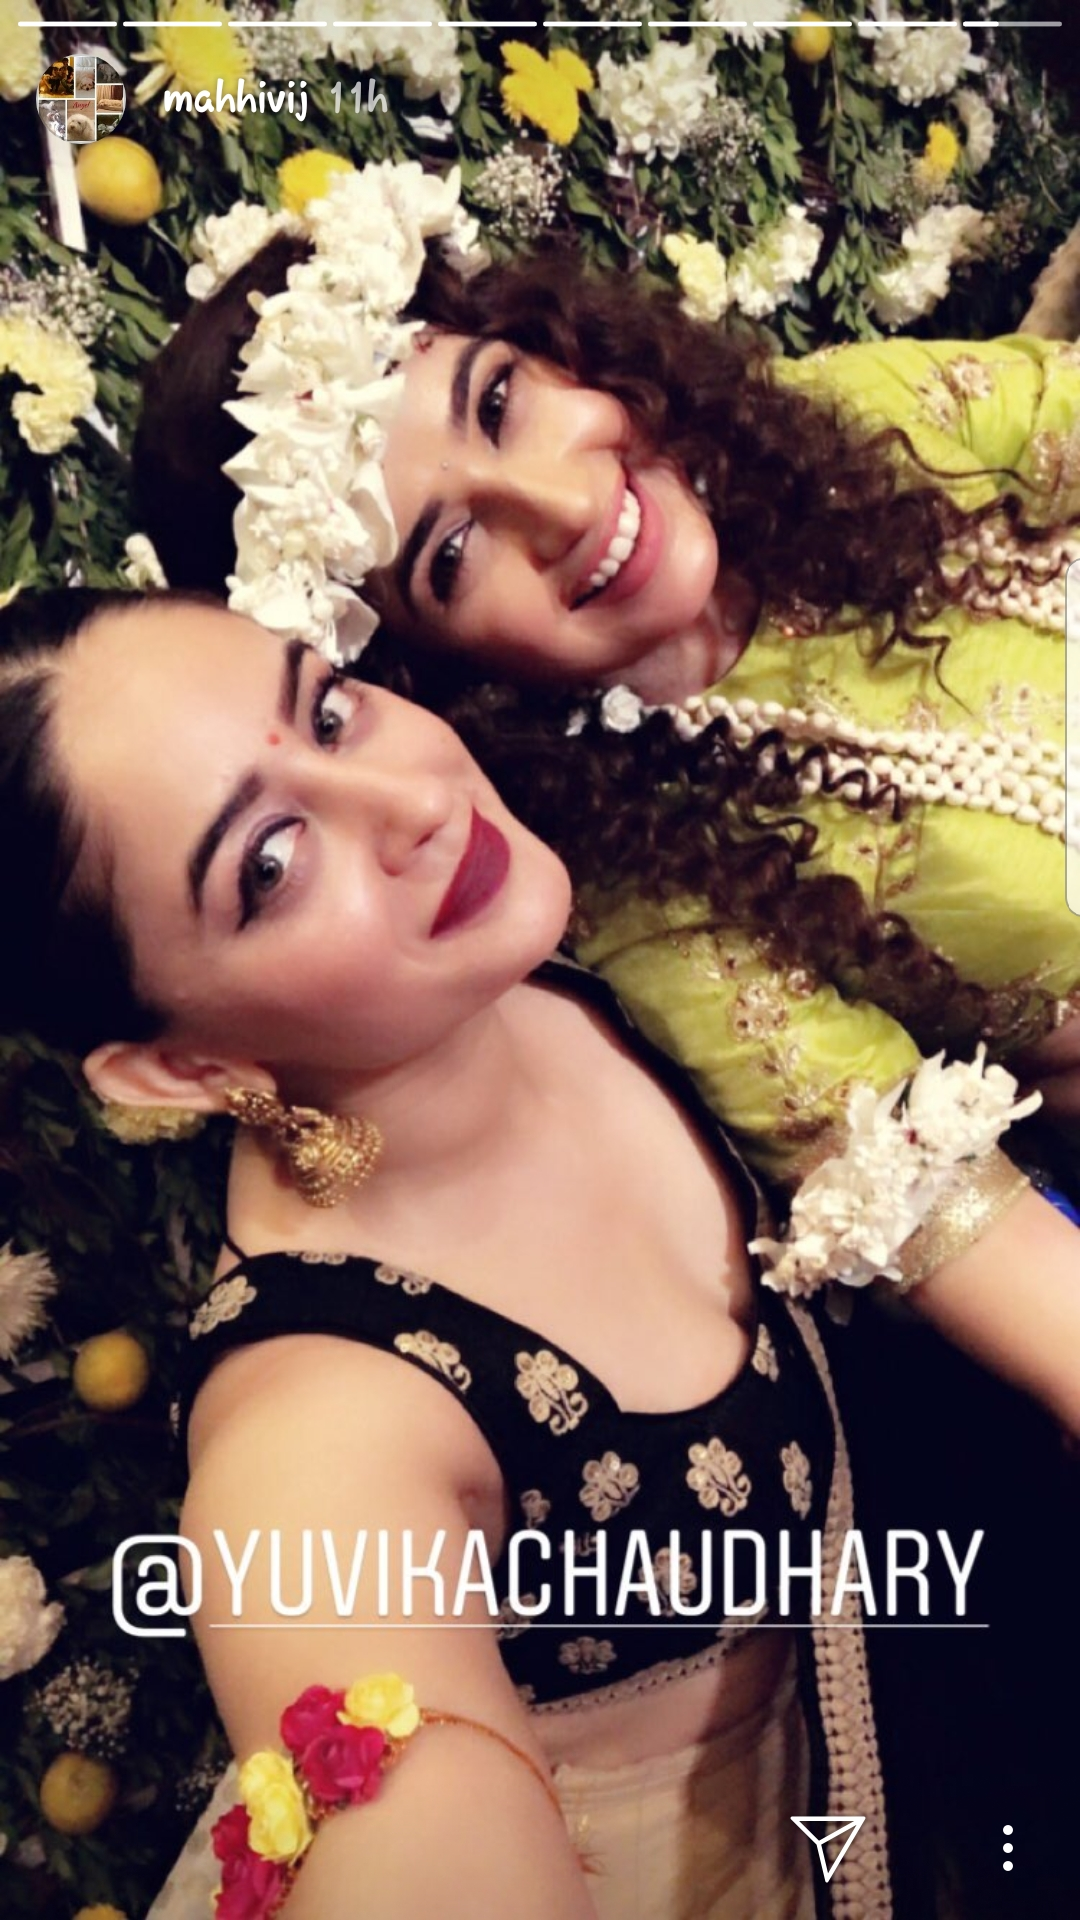 Mahi Vij and Yuvika